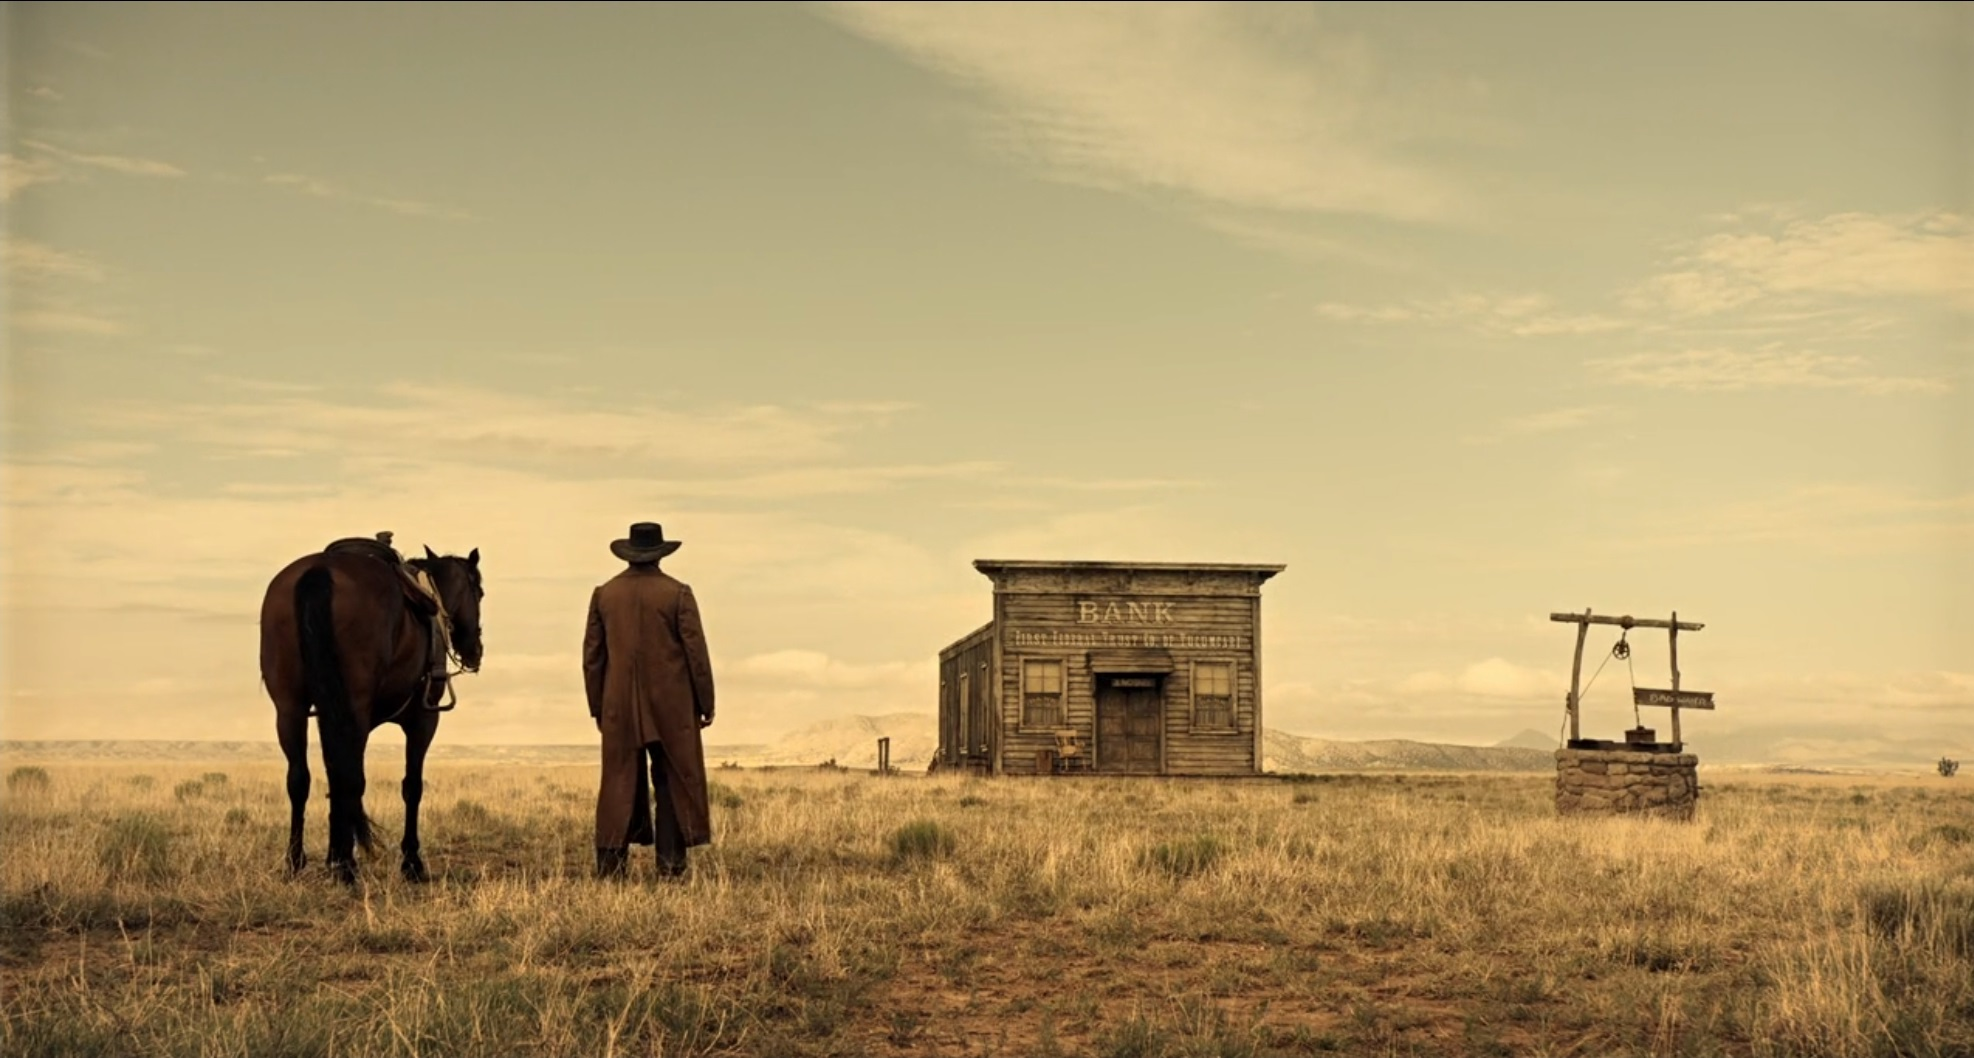 Visually Beautiful Movies: The Ballad of Buster Scruggs in Pictures